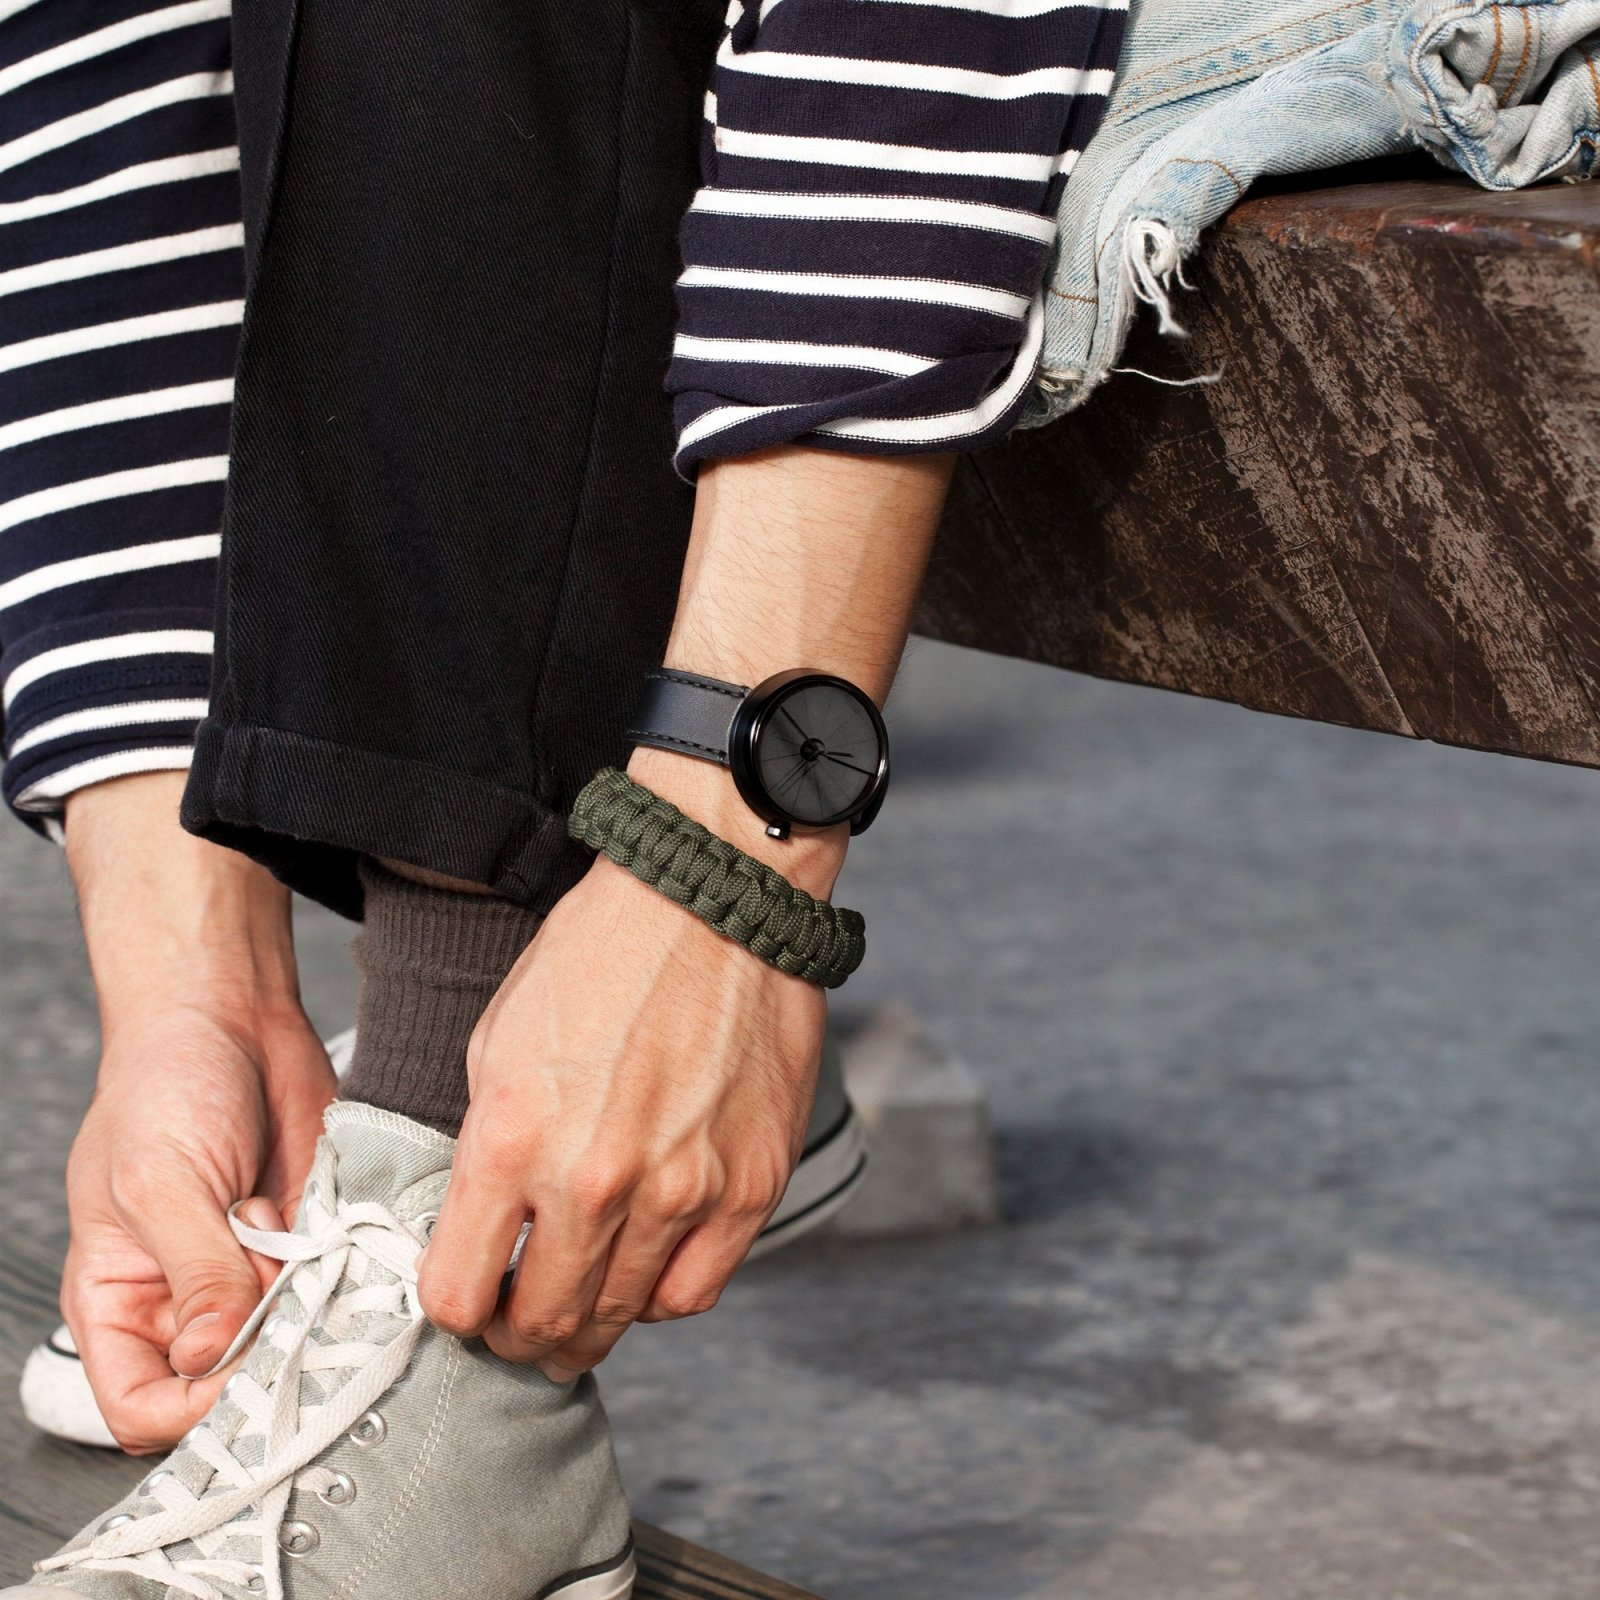 4th-dimension-concrete-wrist-watch-shadow-edition-8